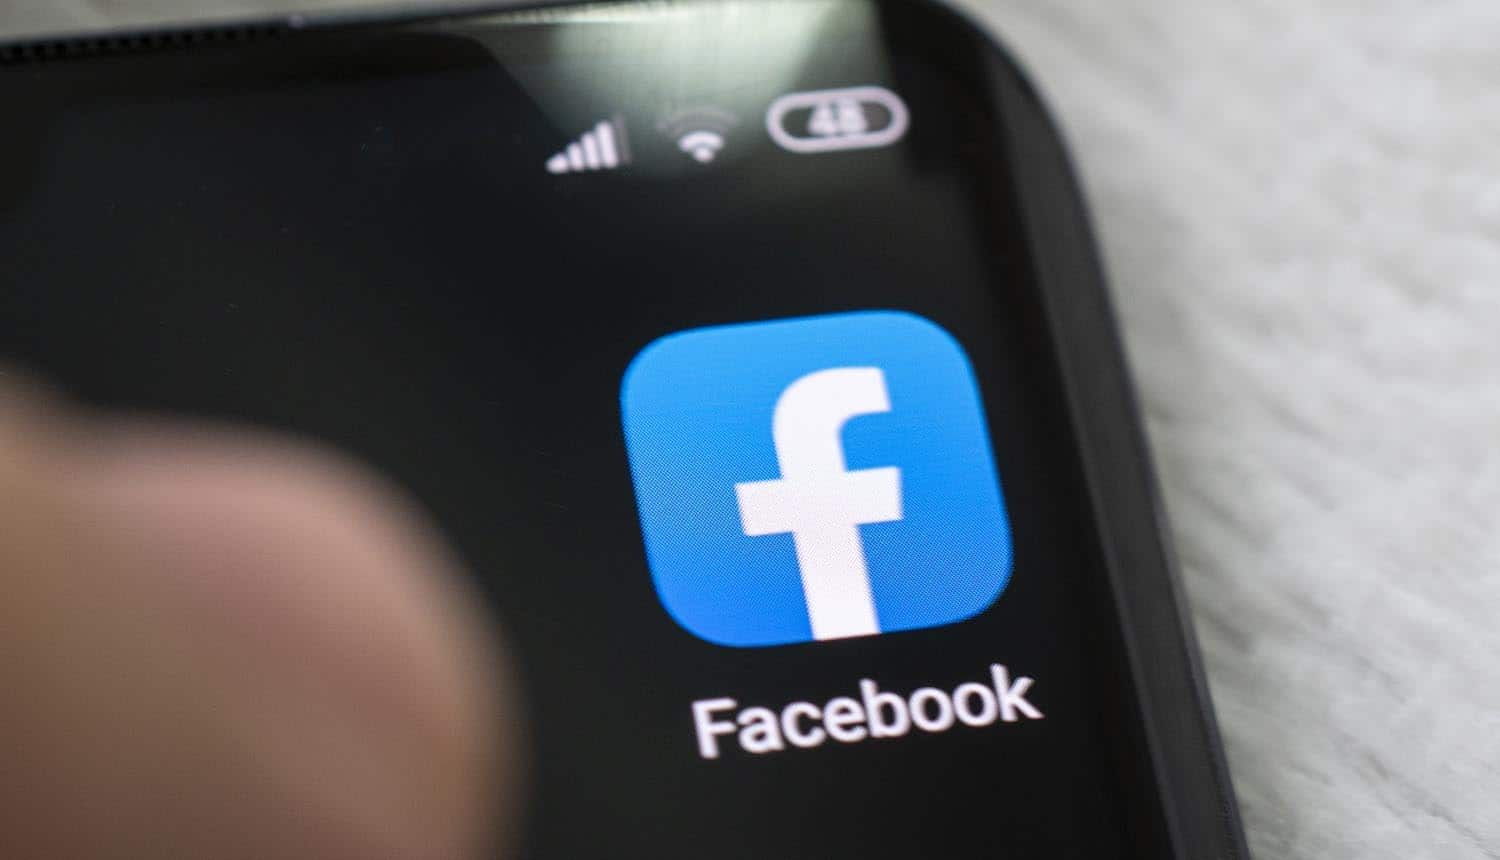 Facebook mobile app on phone screen showing legal action on data leak